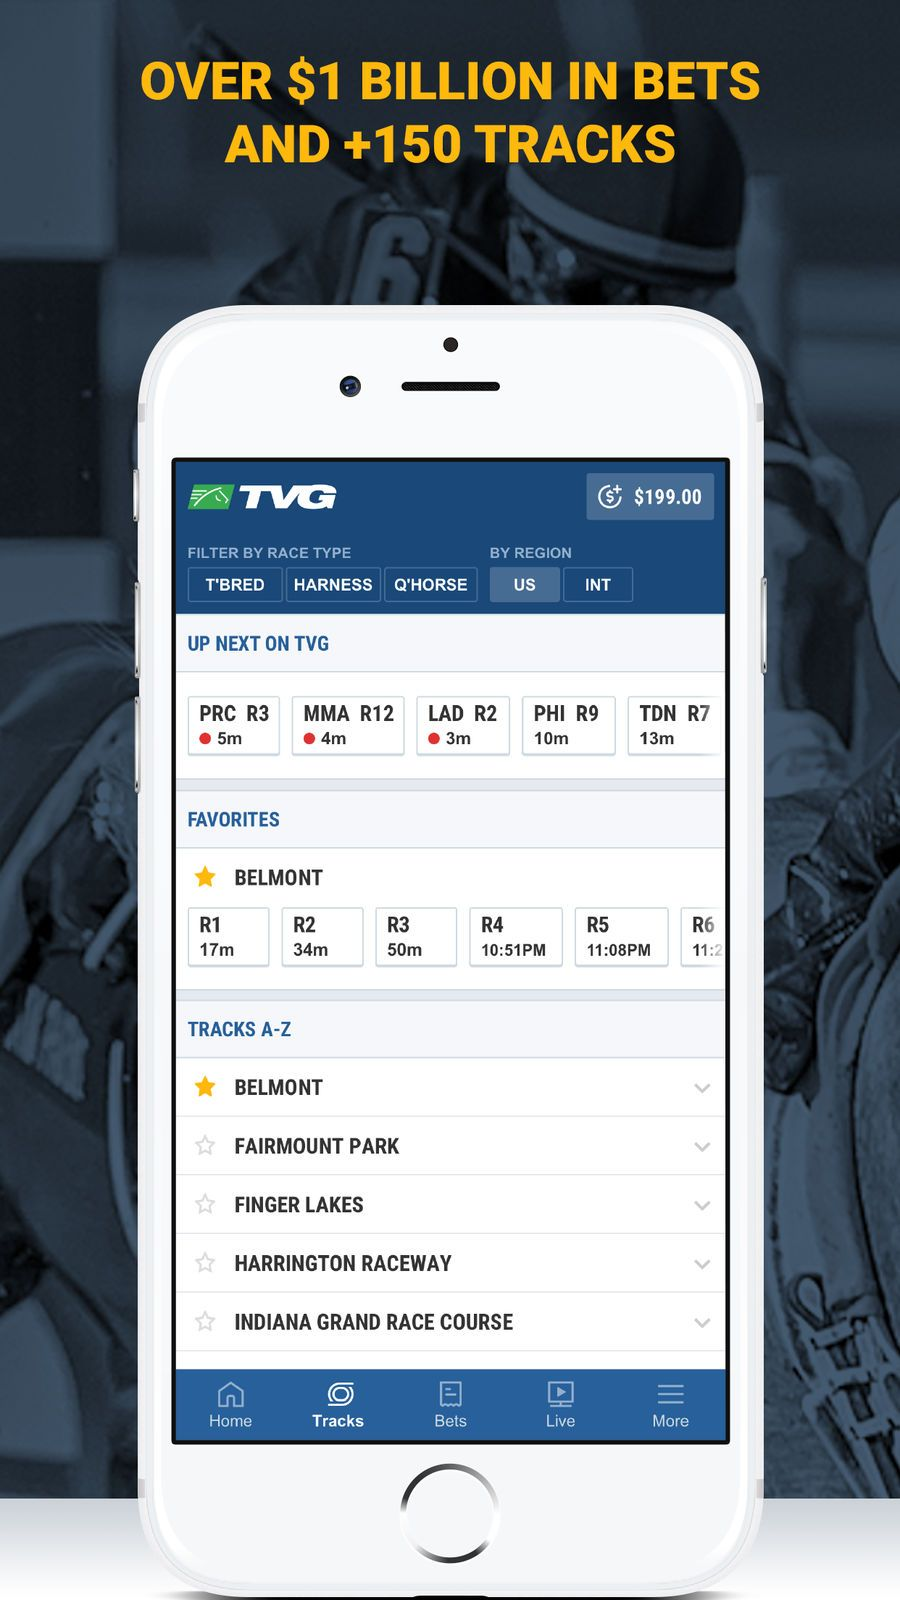 Horse racing betting apps relegation battle betting sites